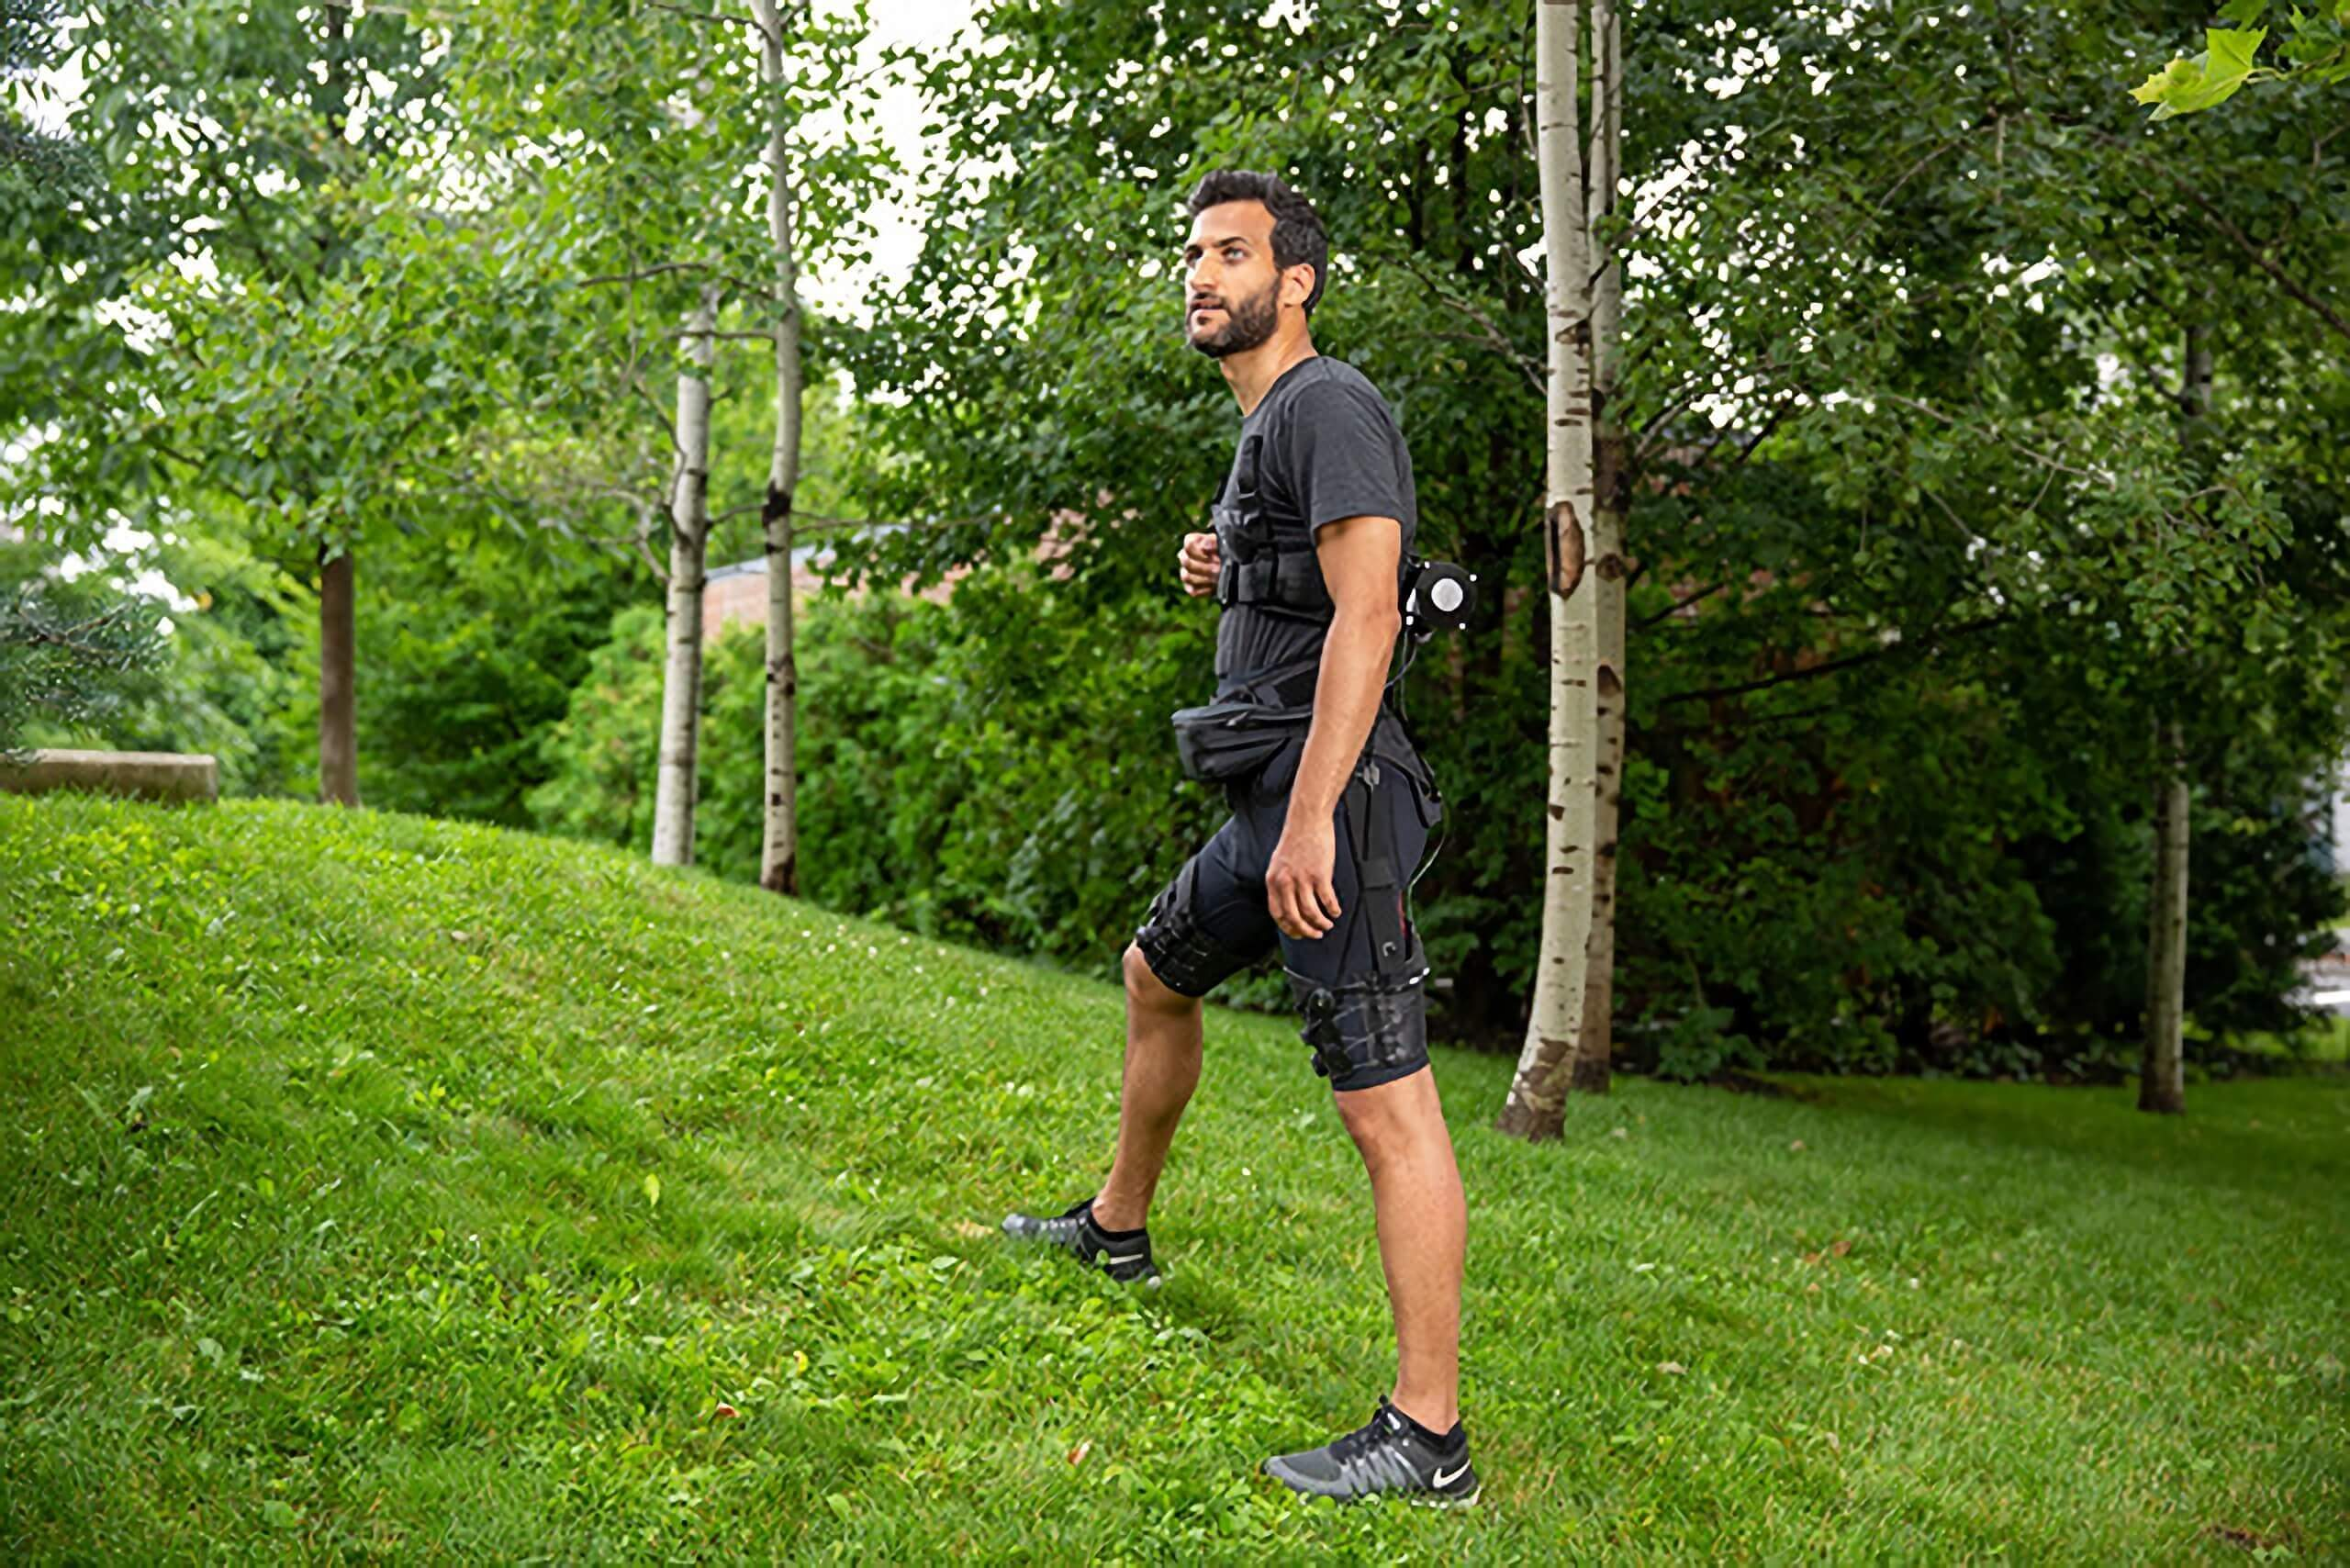 Tight-fitting and light exosuit aids walking and running through AI